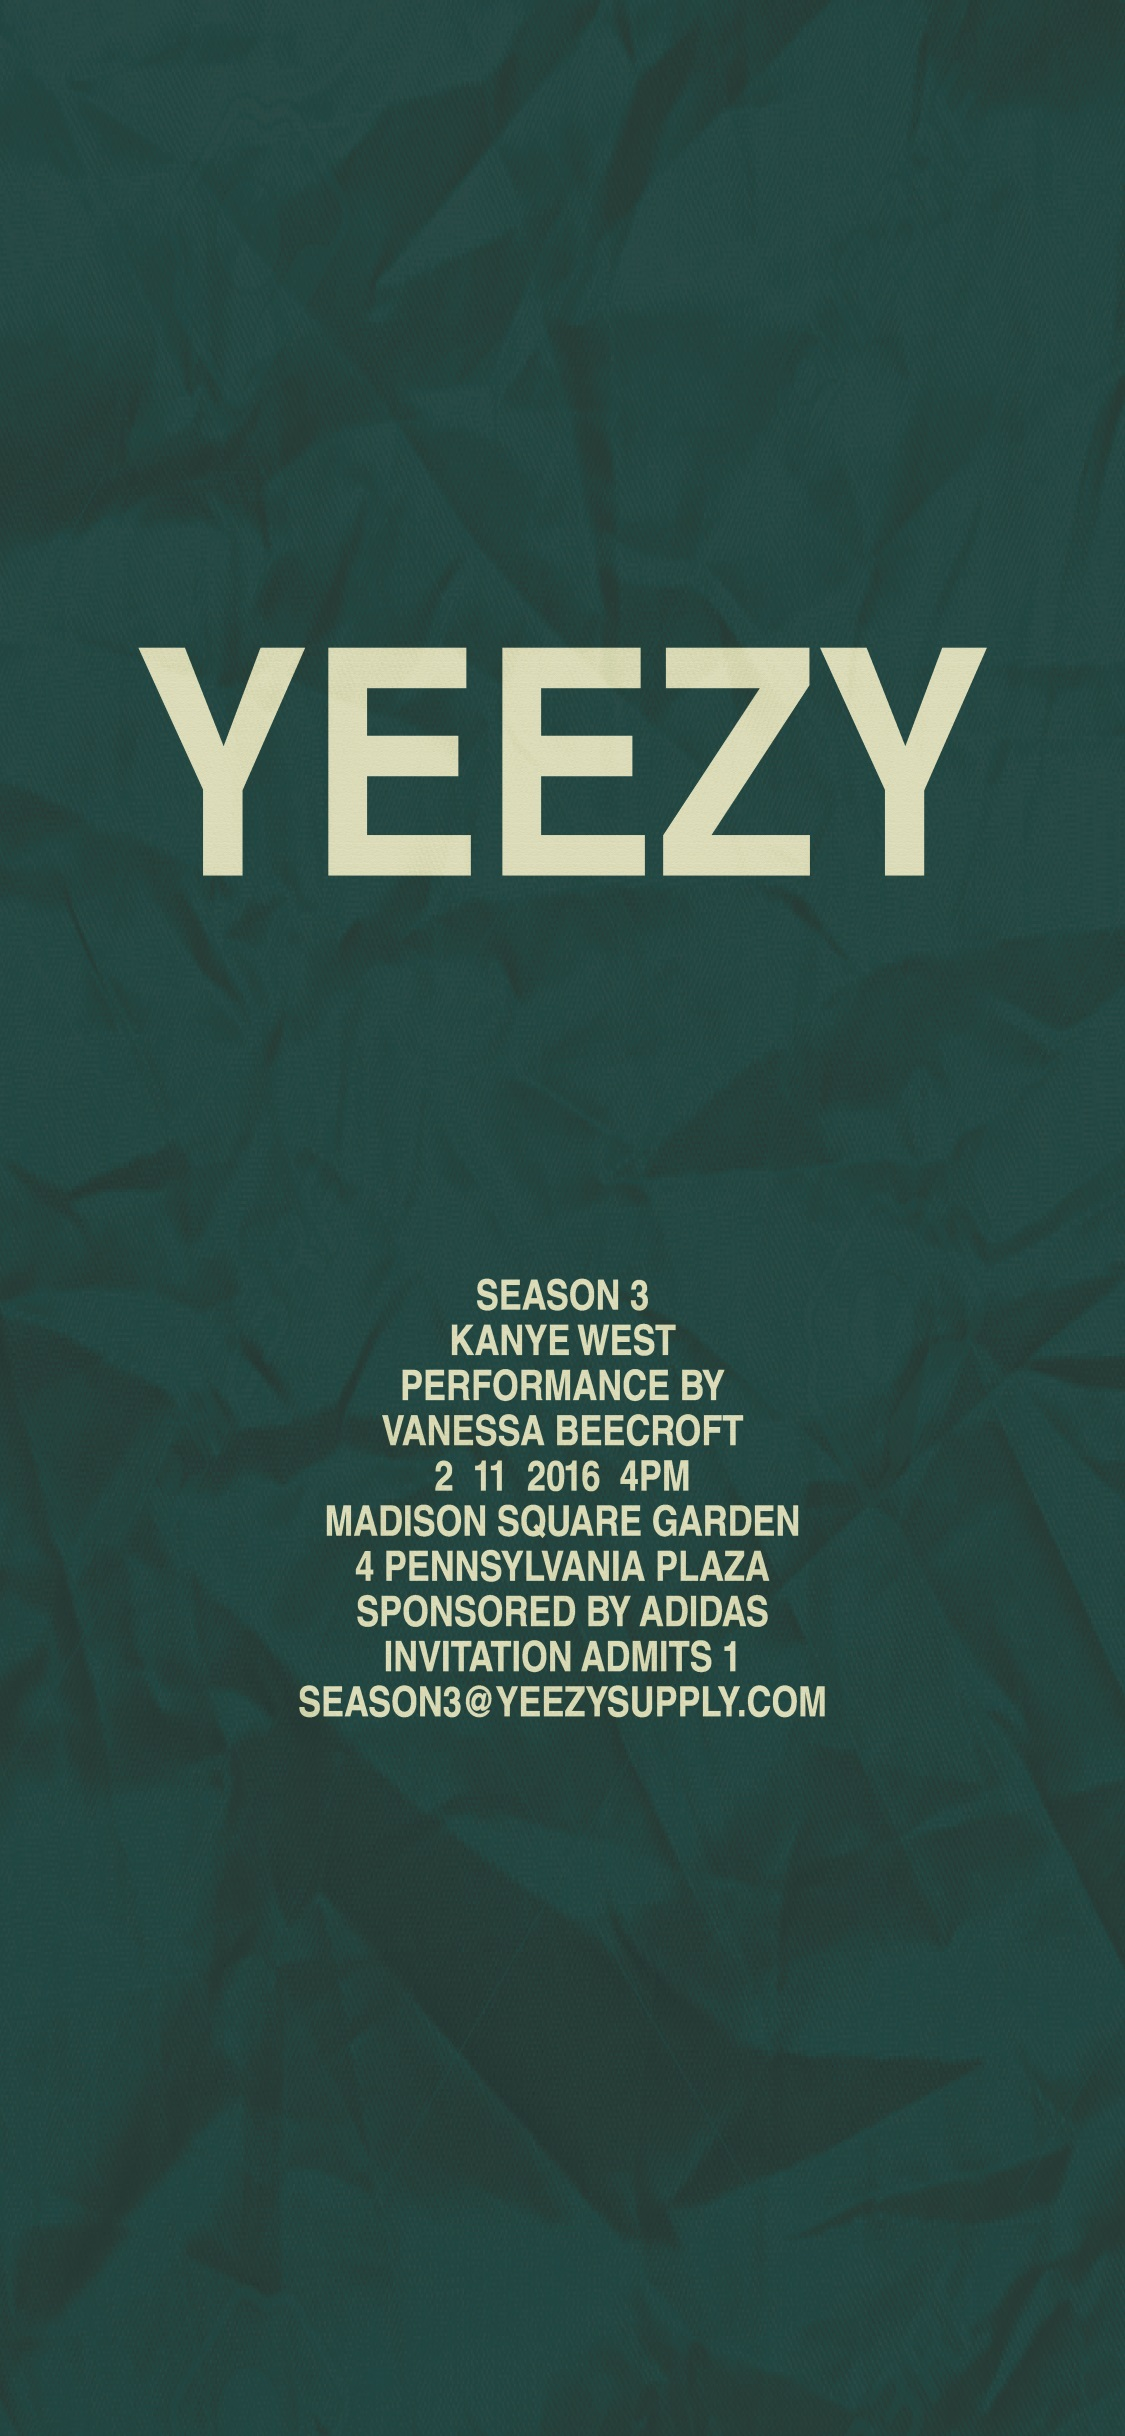 Hd 1080p 5 Inch Screen Wallpaper For Iphone - Yeezy Wallpaper Iphone X , HD Wallpaper & Backgrounds